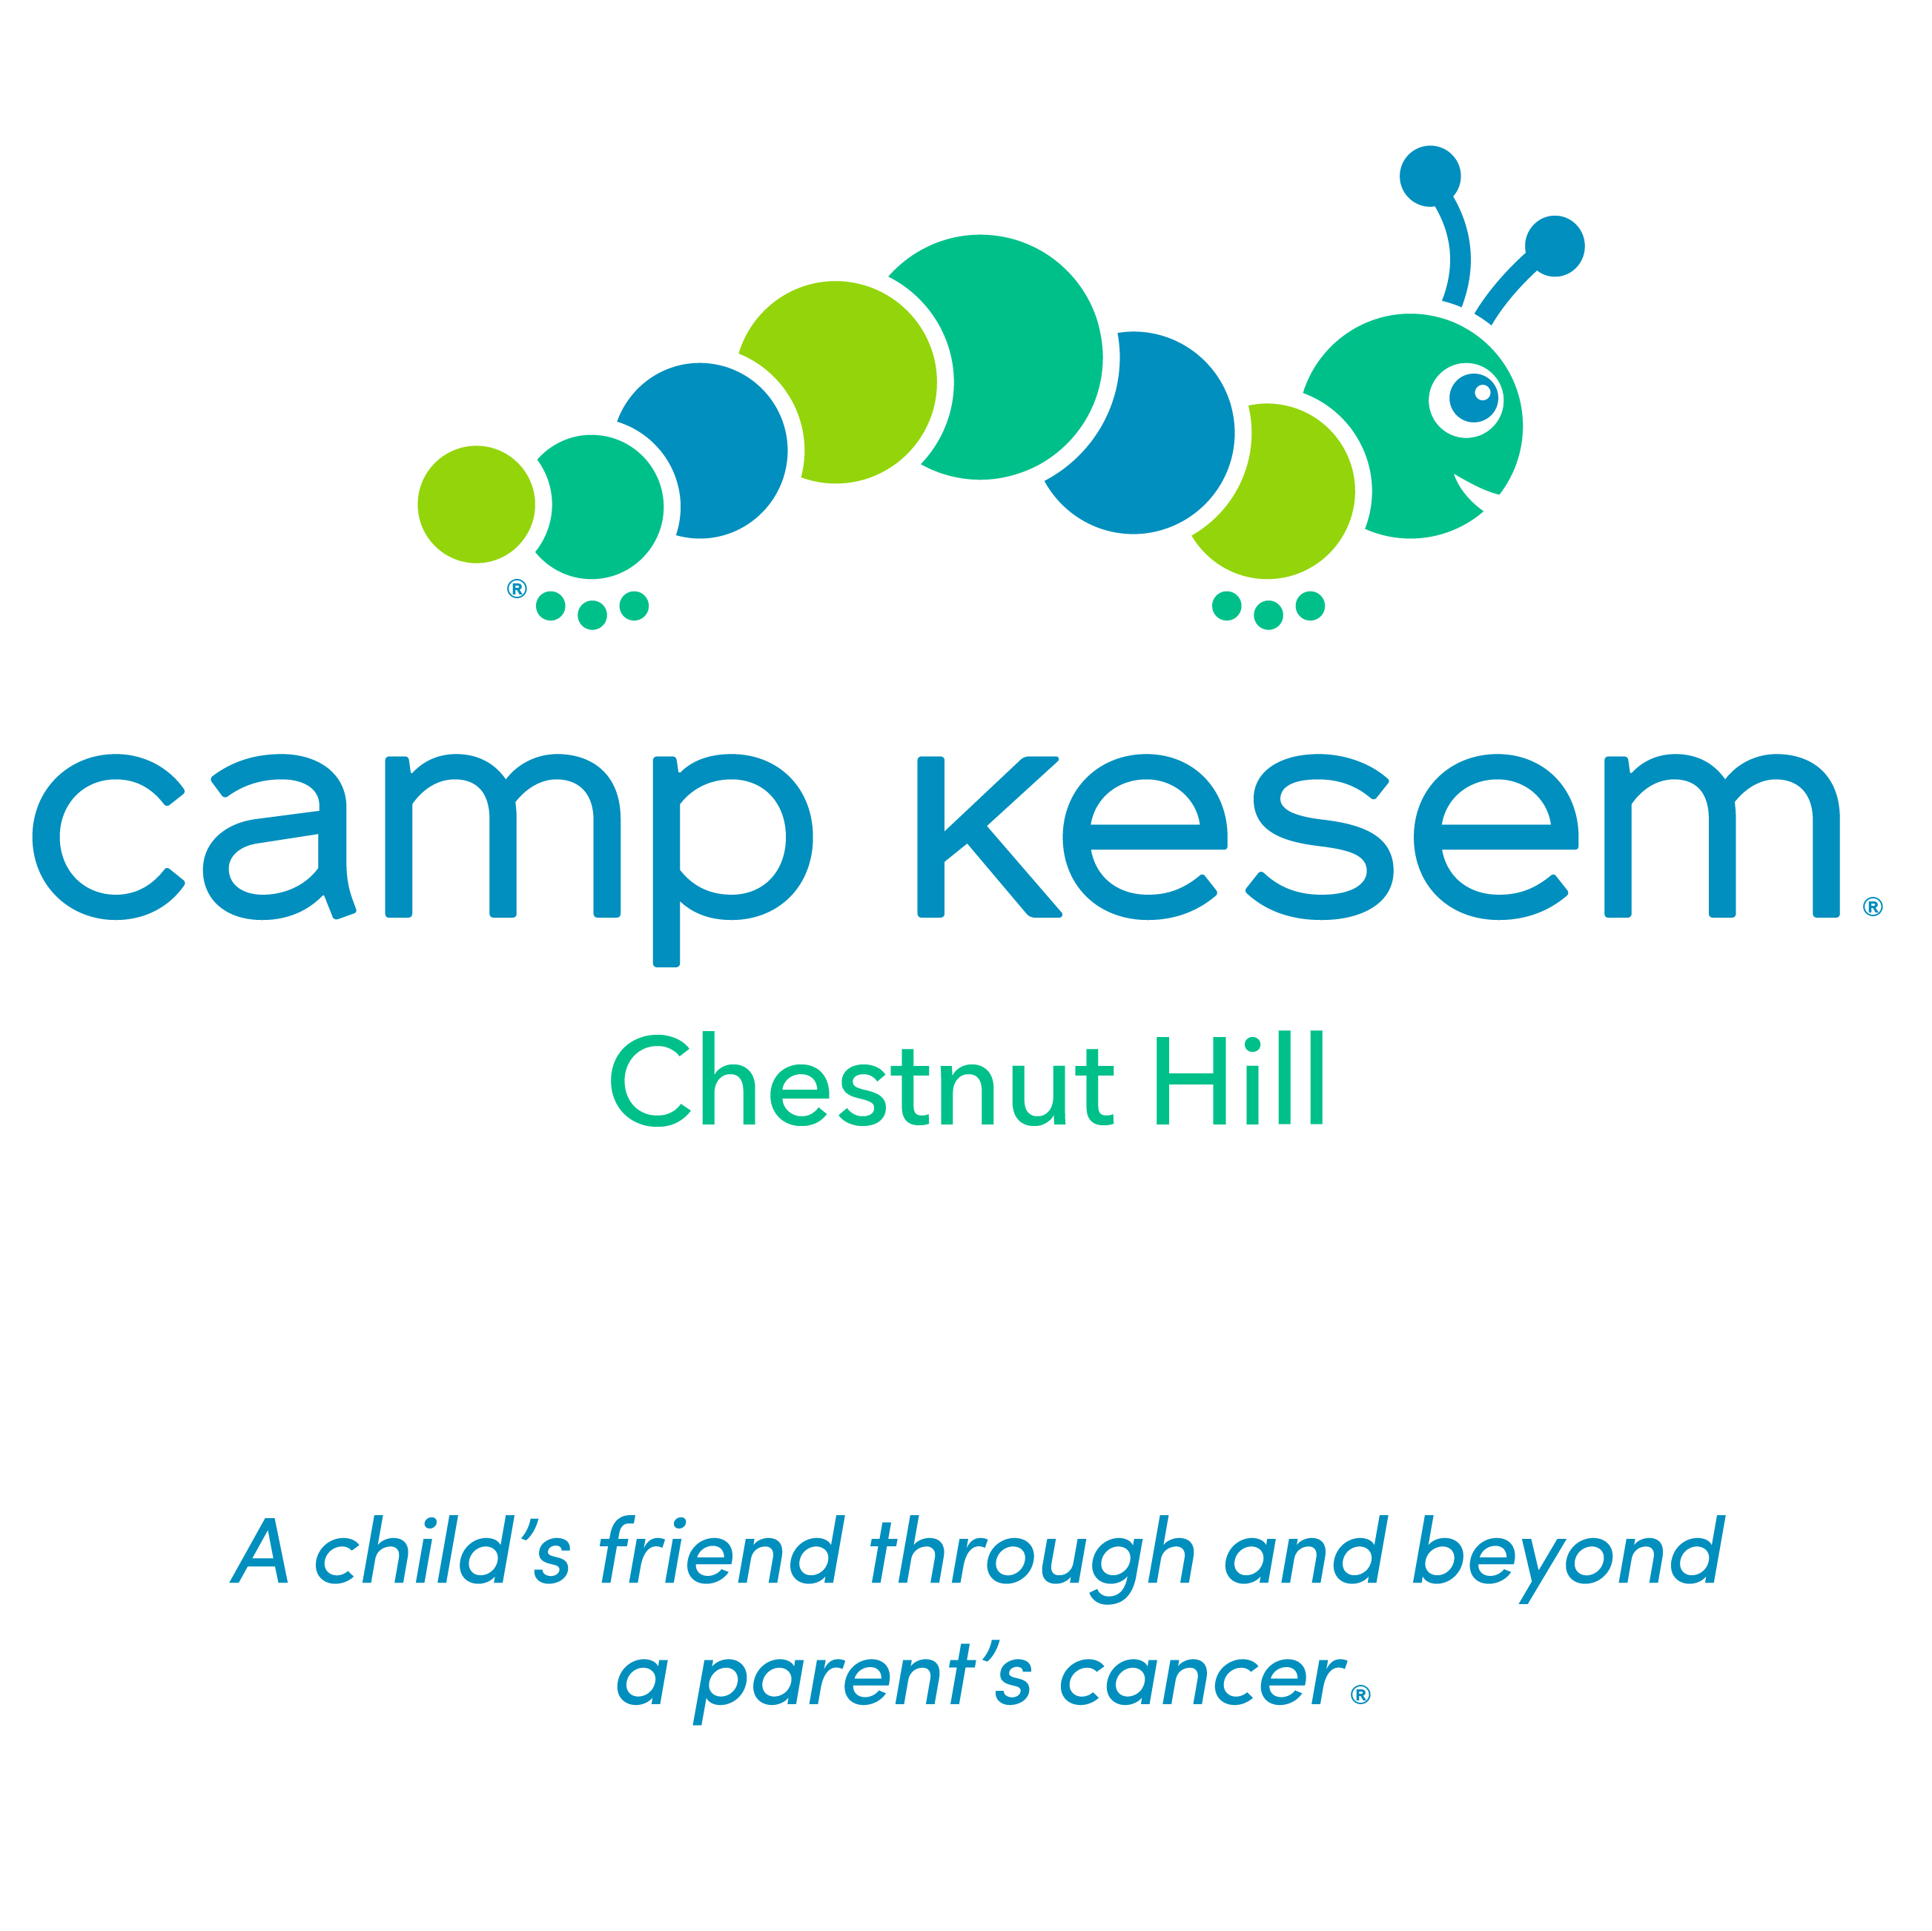 Camp Kesem Chestnut Hill